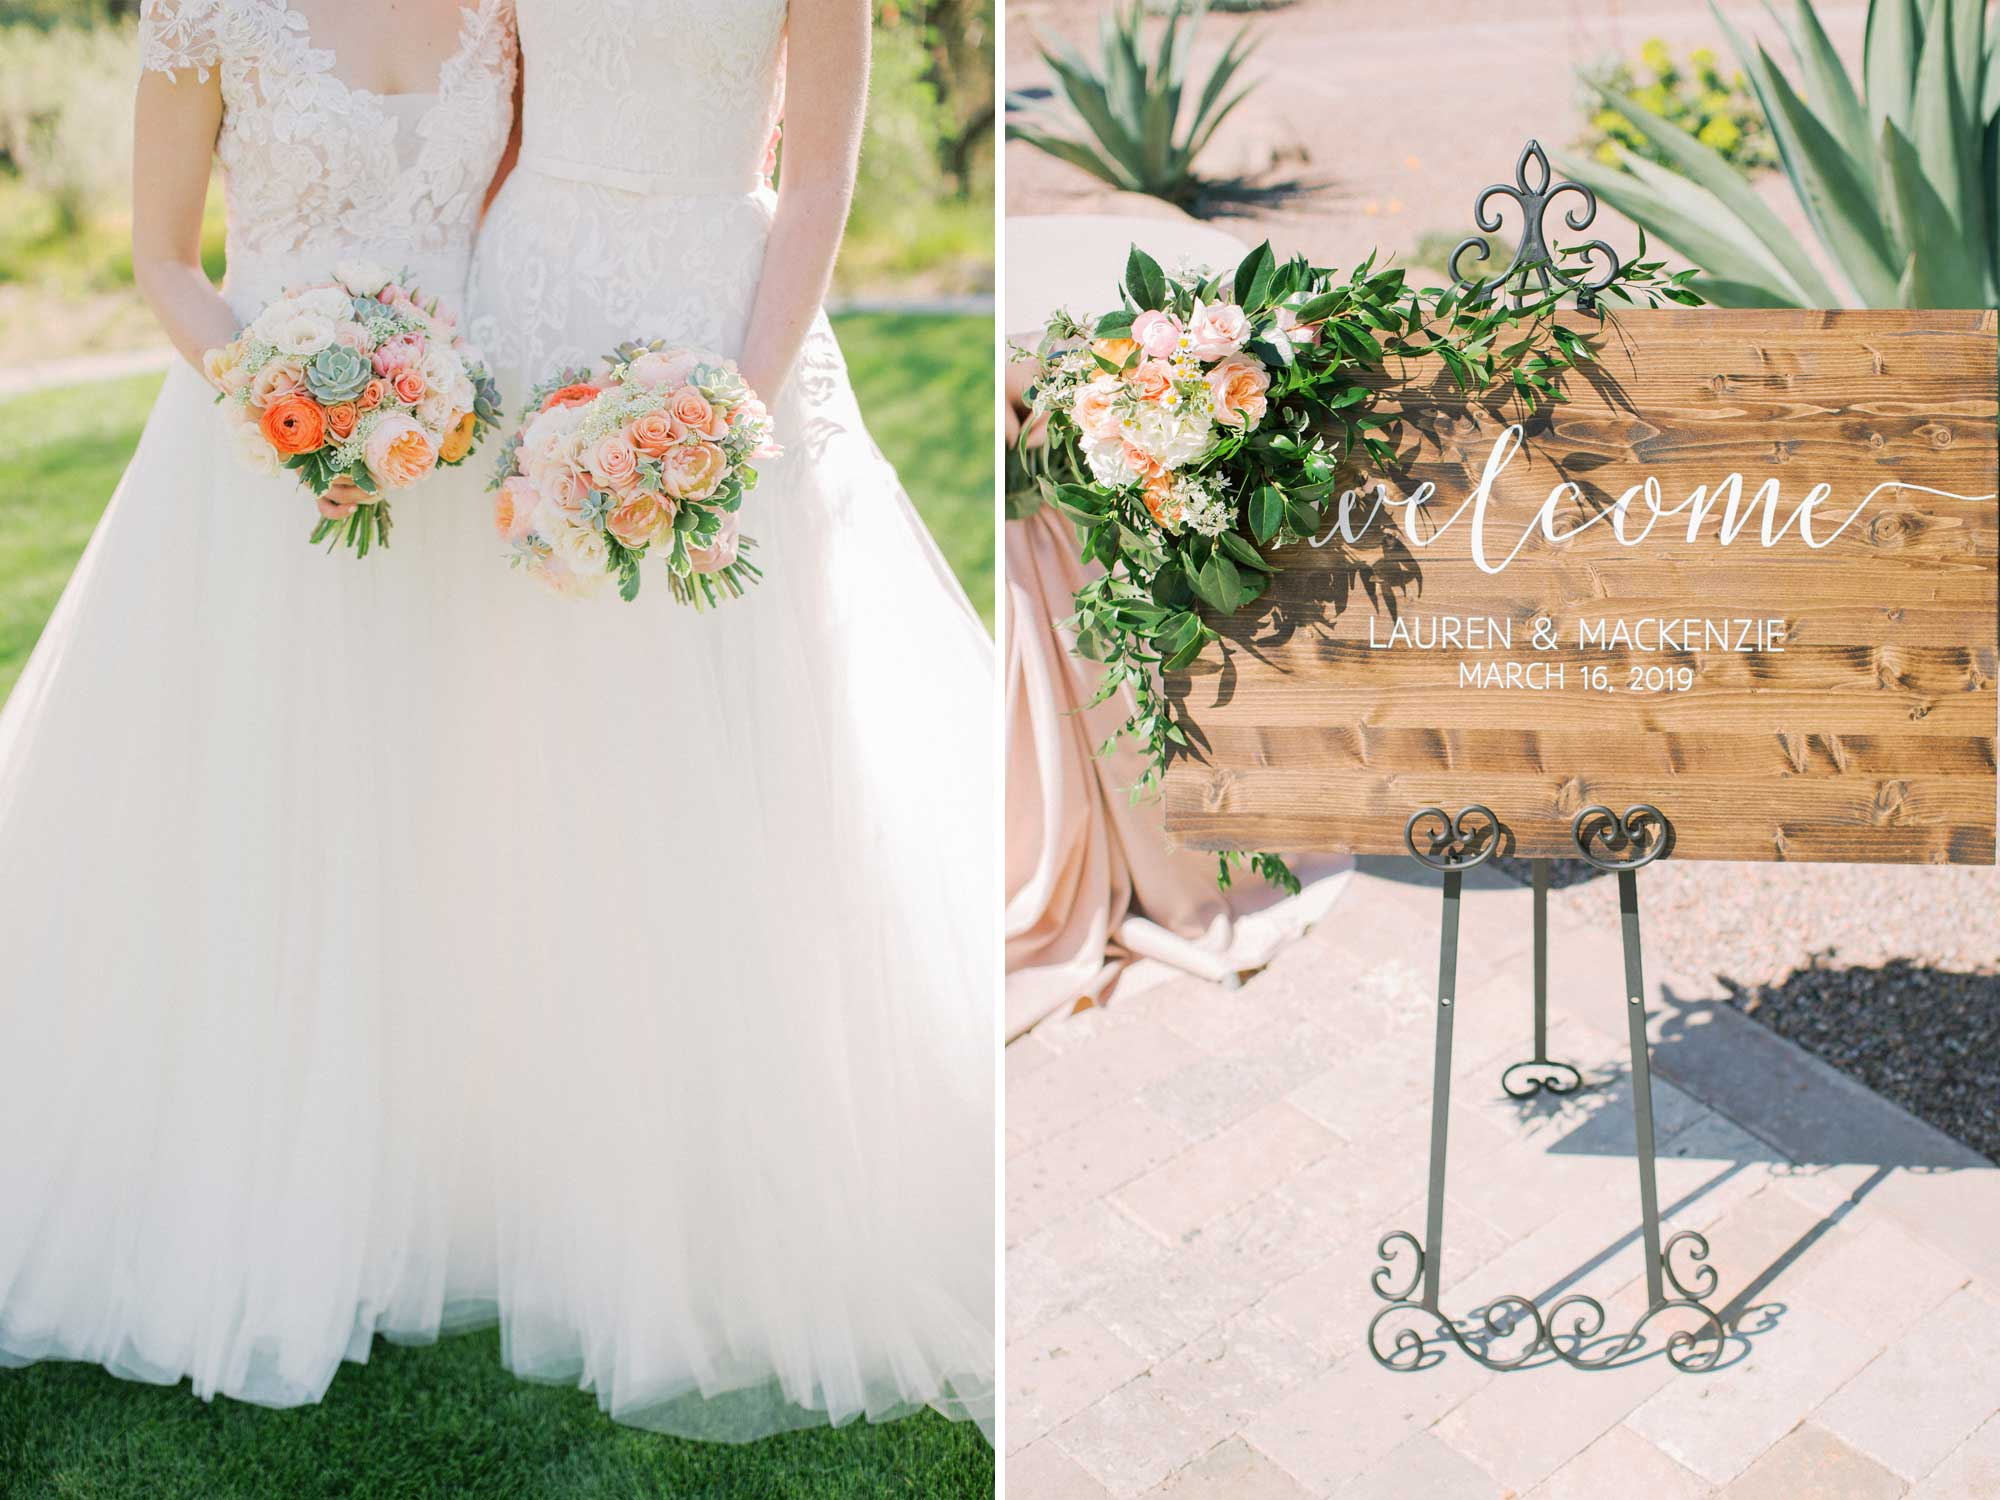 Summer Rose Bouquets and Wedding Reception Sign